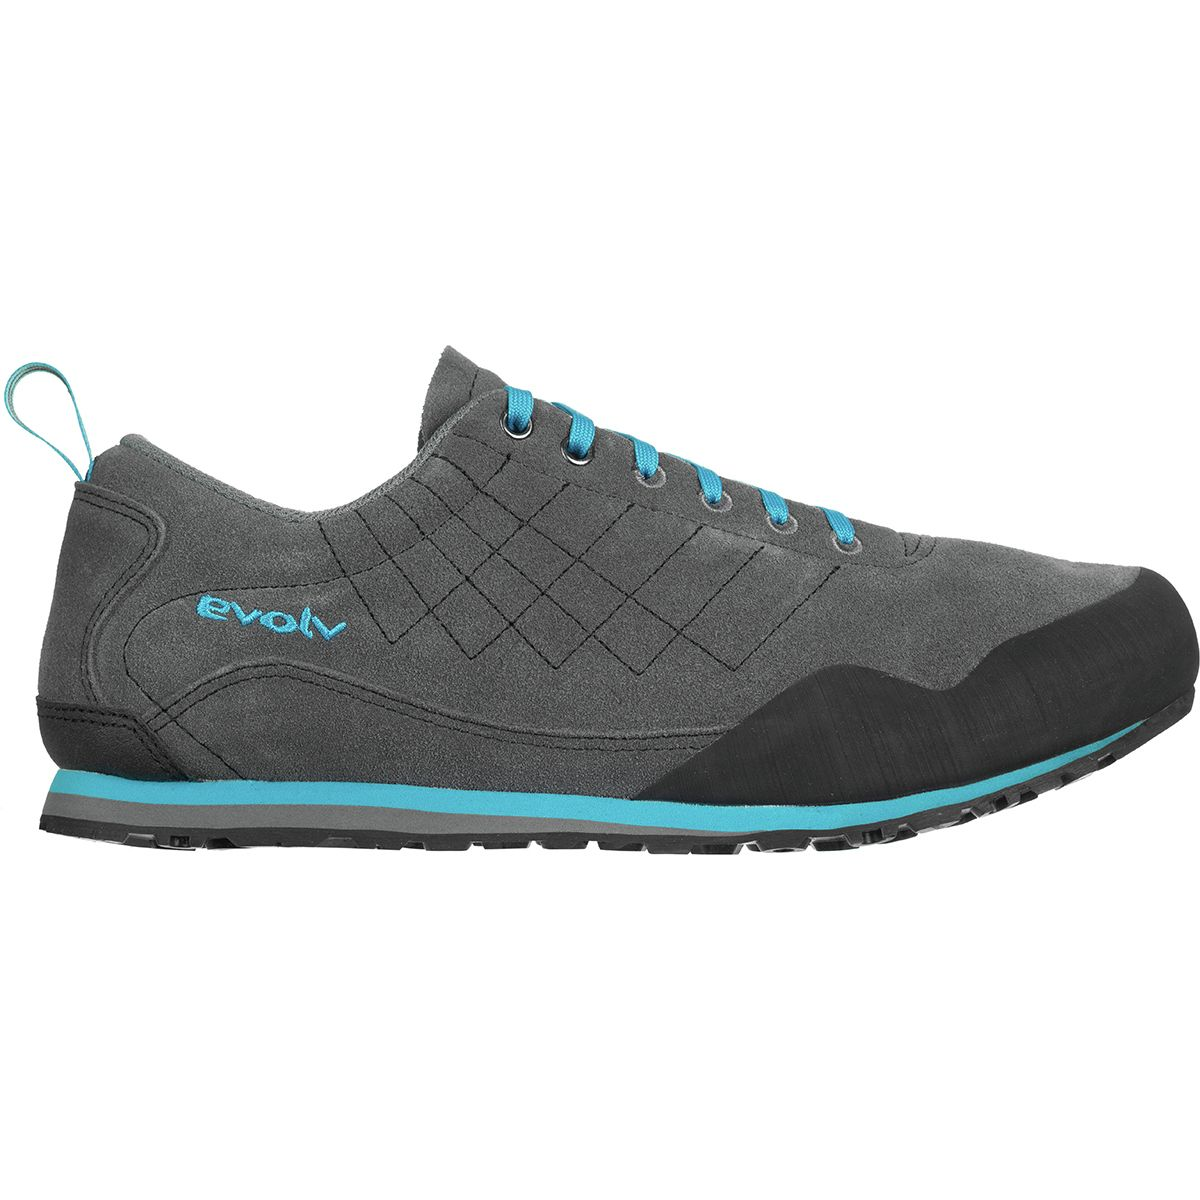 EVOLV Zender Approach Shoe [CLEARANCE]